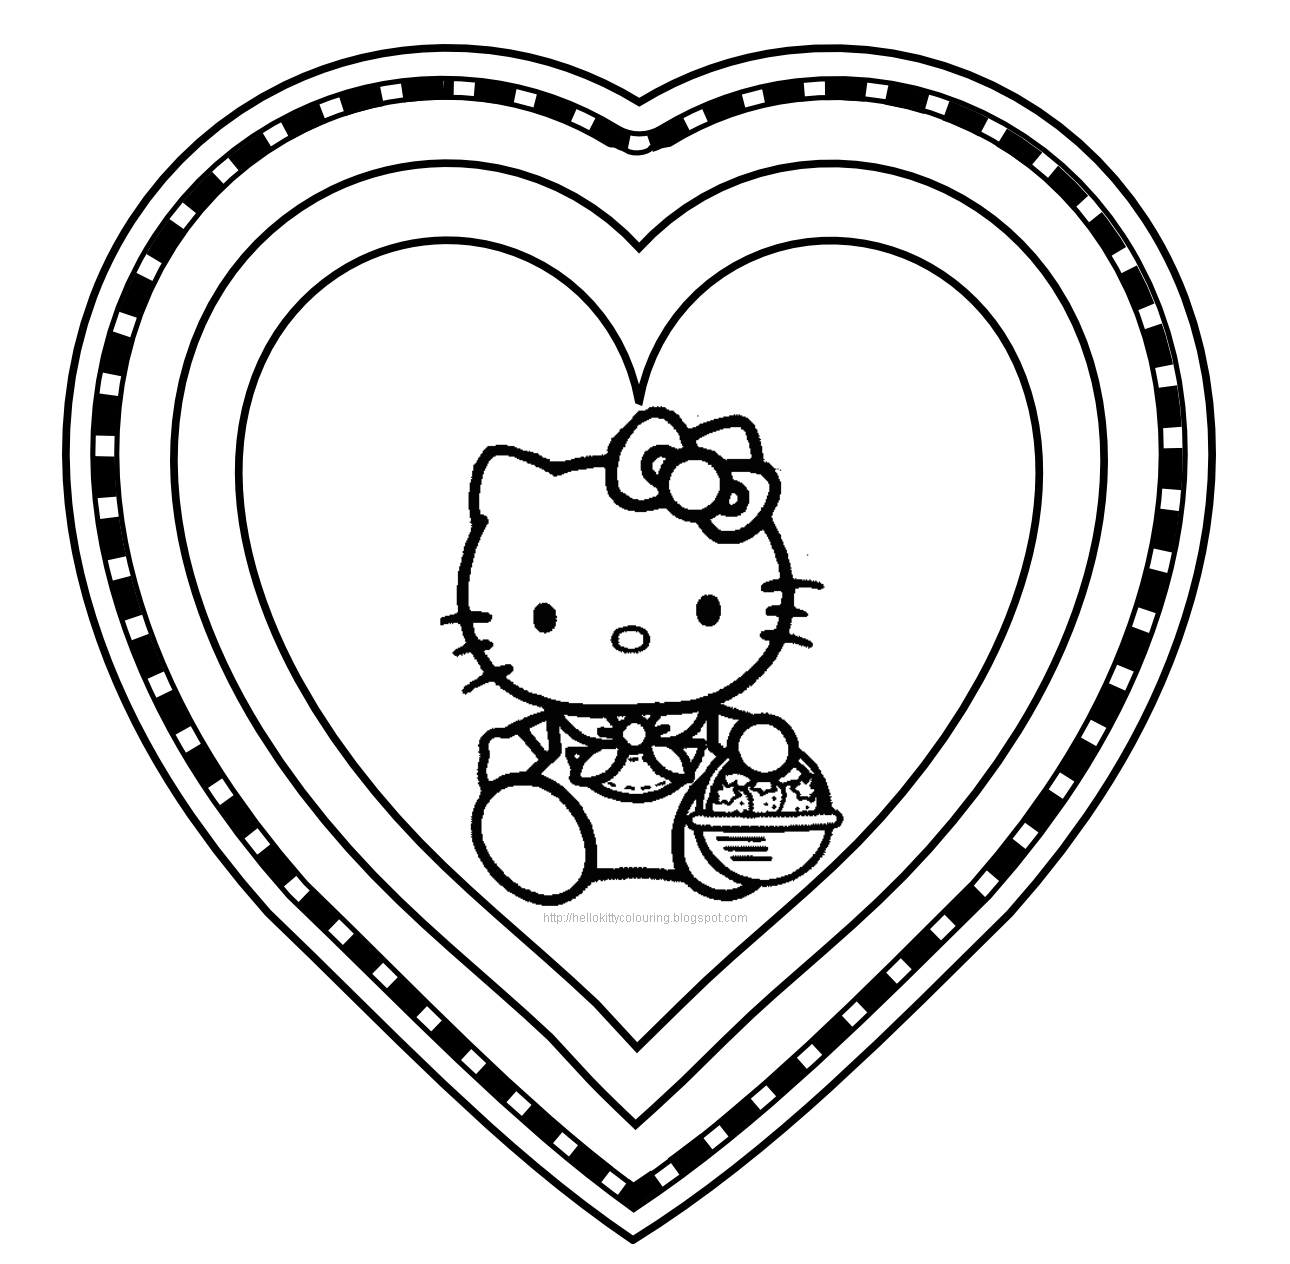 HELLO KITTY VALENTINE COLORING BOOK PAGES